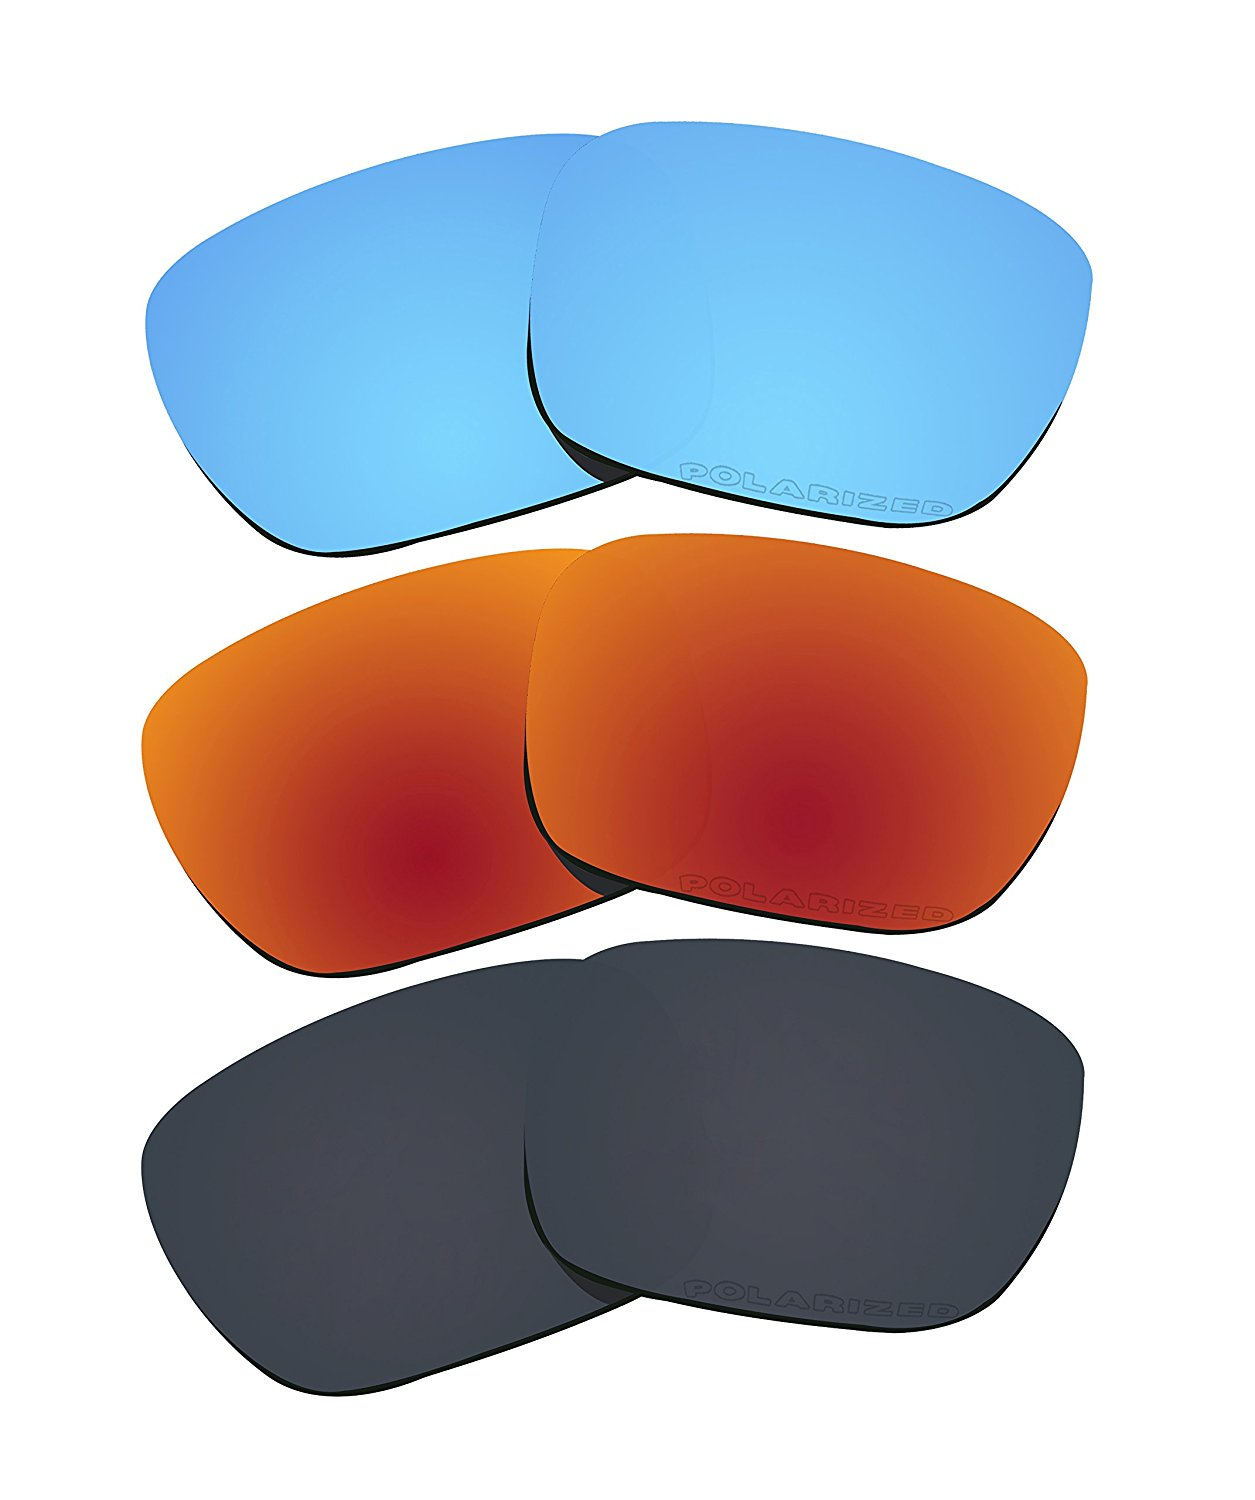 4f57615e2e Get Quotations · 3 Pairs Polarized Lenses Replacement for Oakley Holbrook  Sunglasses T4